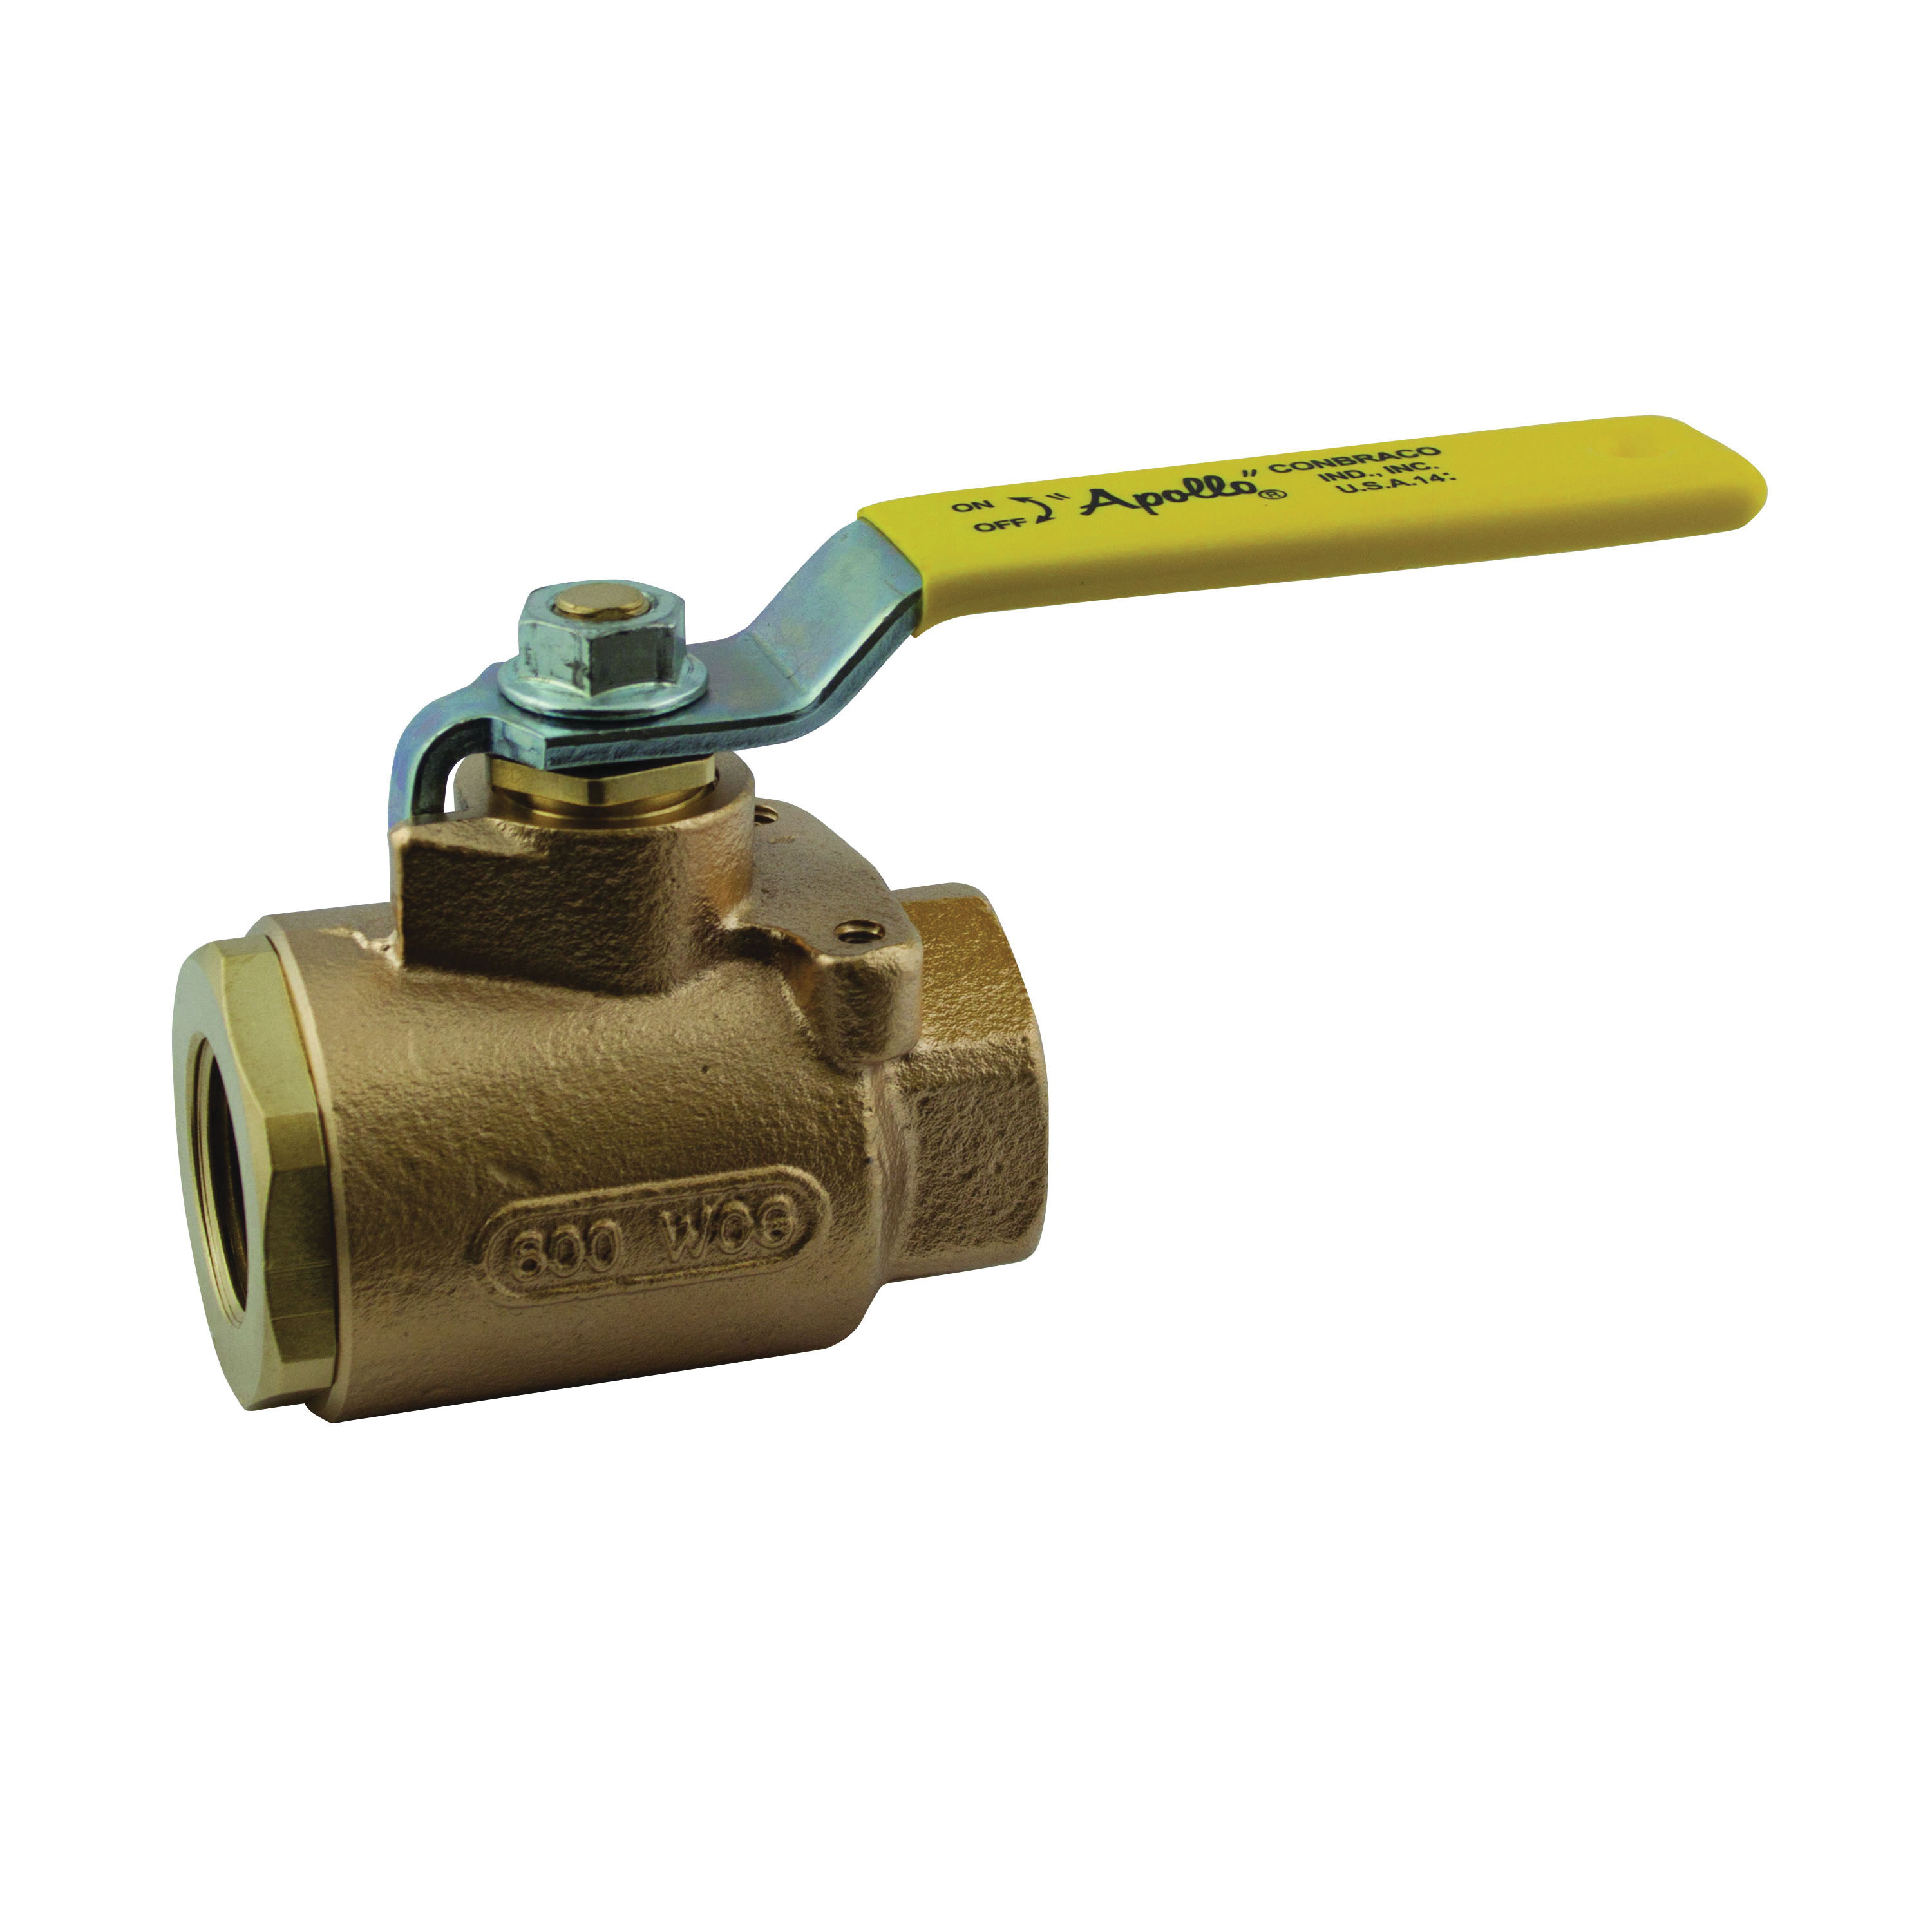 Apollo™ 77-143-10 77-140 2-Piece Ball Valve With Mounting Pad, 1/2 in, FNPT, Bronze Body, Full Port, RPTFE Softgoods, Domestic